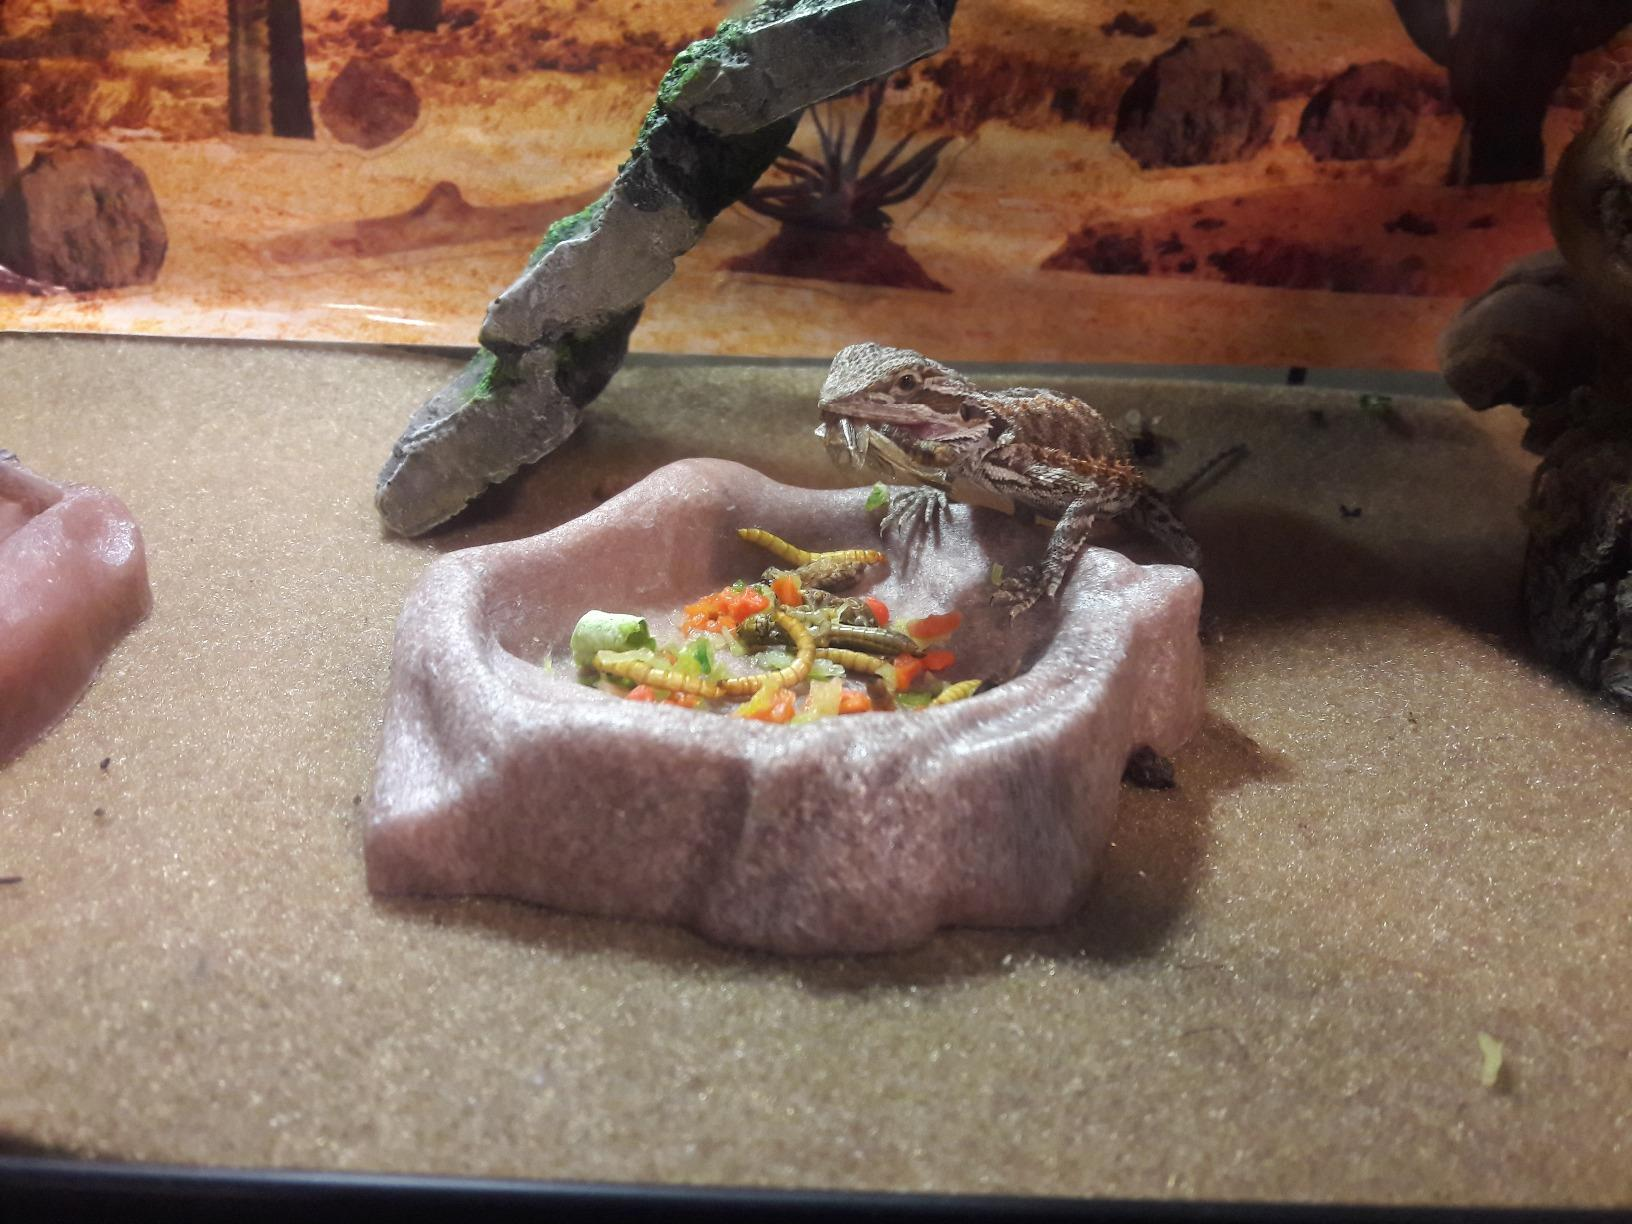 Can Bearded Dragons Eat Dried Food?